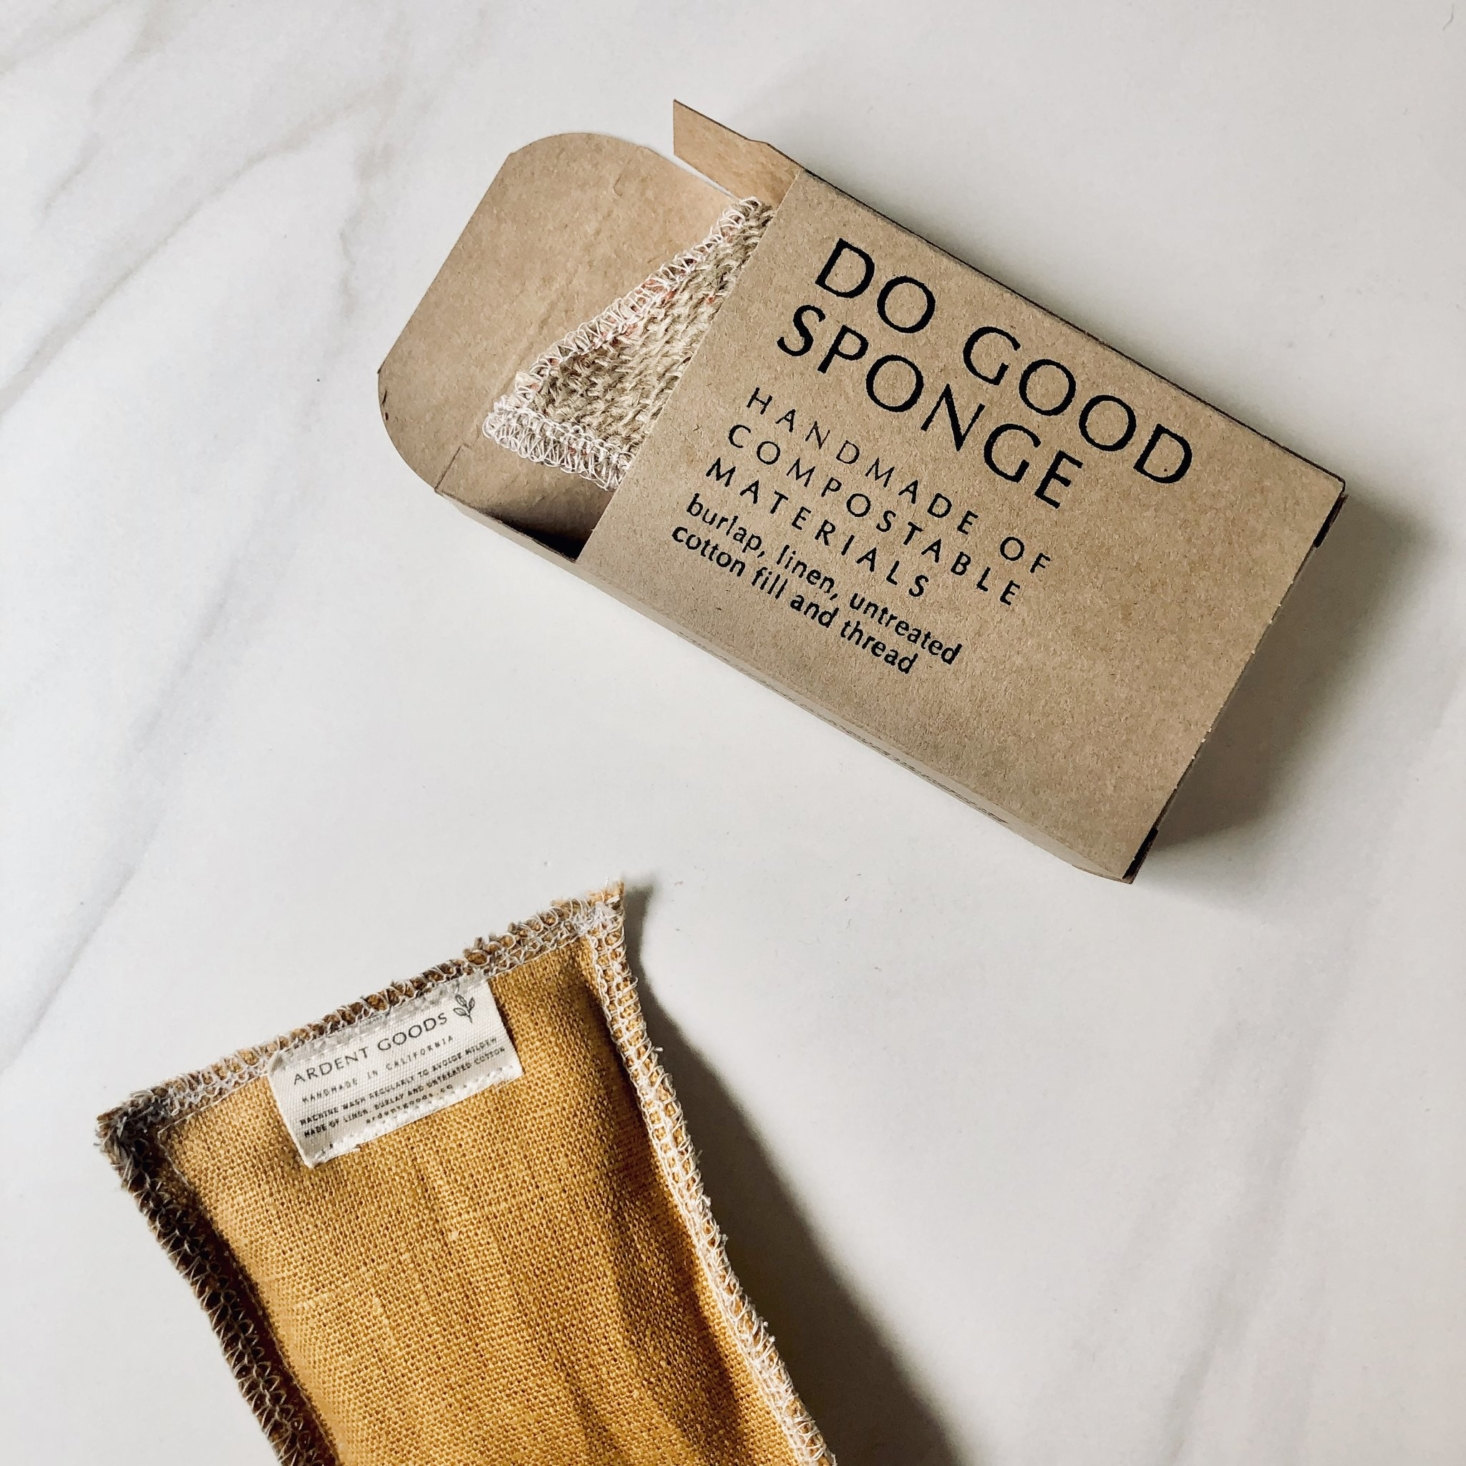 Sustainable Shopping: High-Quality, Eco-Friendly Goods from San Francisco